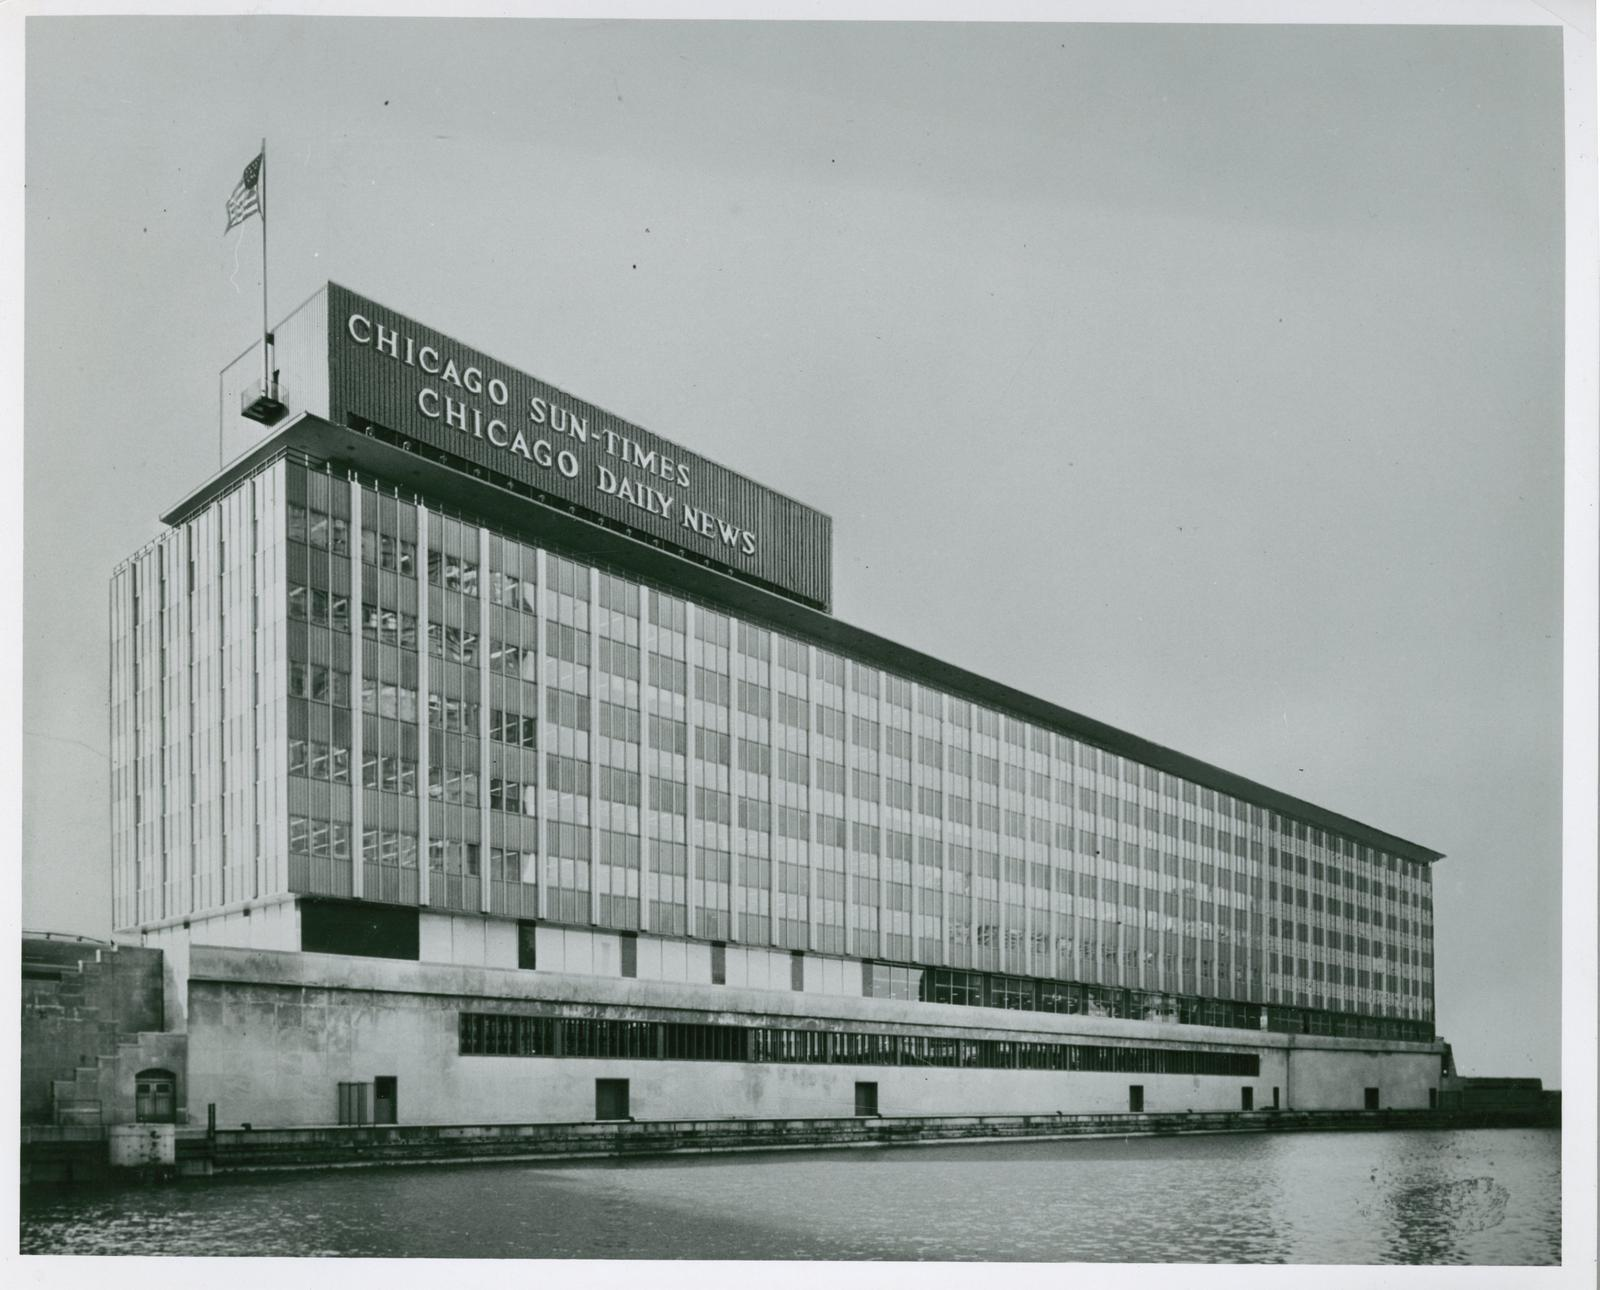 Chicago Sun-Times, Chicago Daily News building, Chicago, mid-20th century